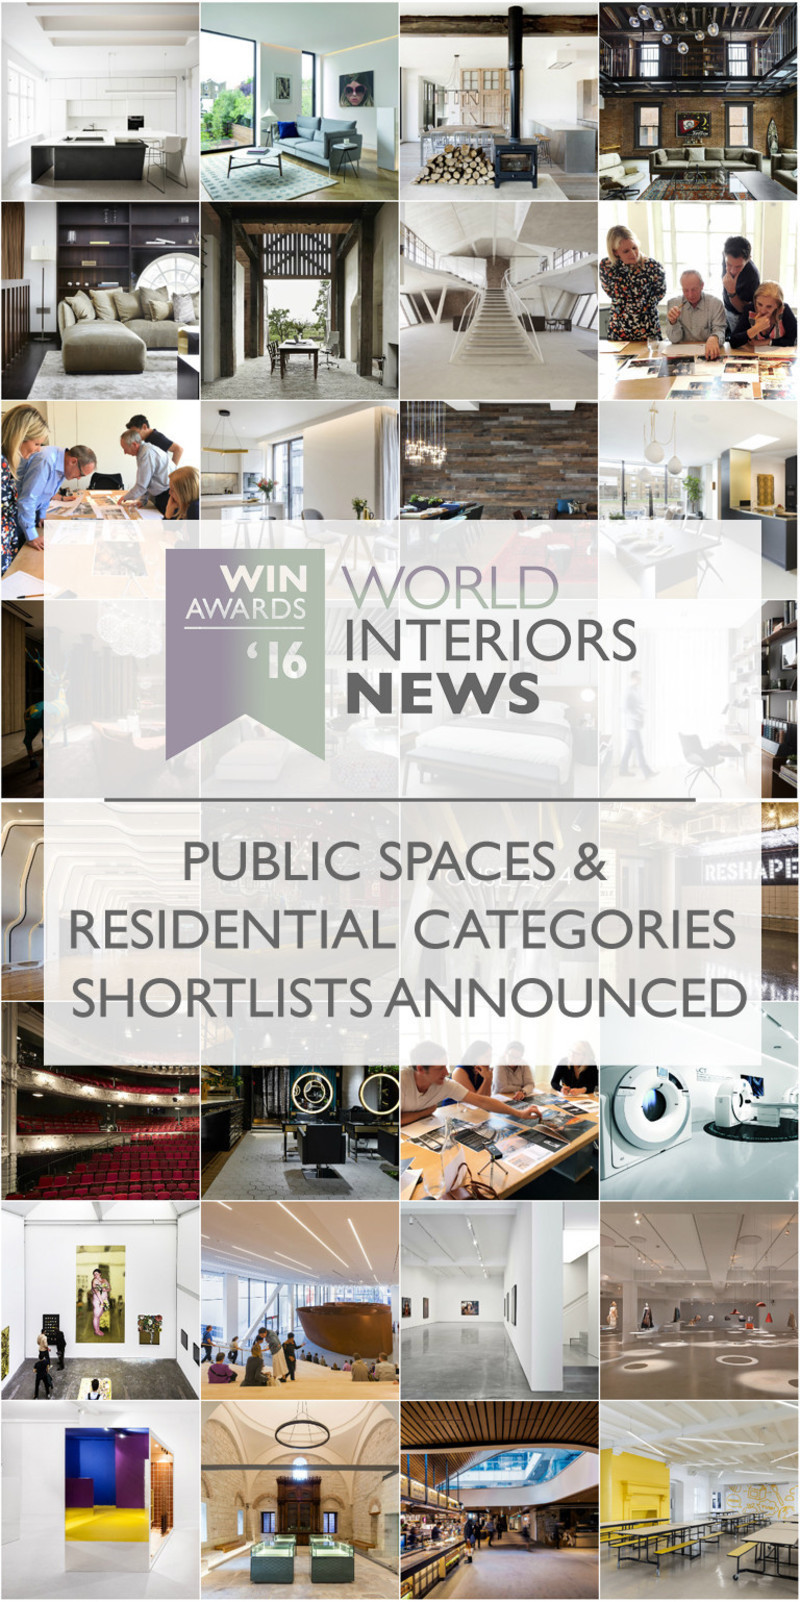 Newsroom - Press release - WIN Awards - Public Spaces + Residential Categories Shortlists Announced - World Interiors News